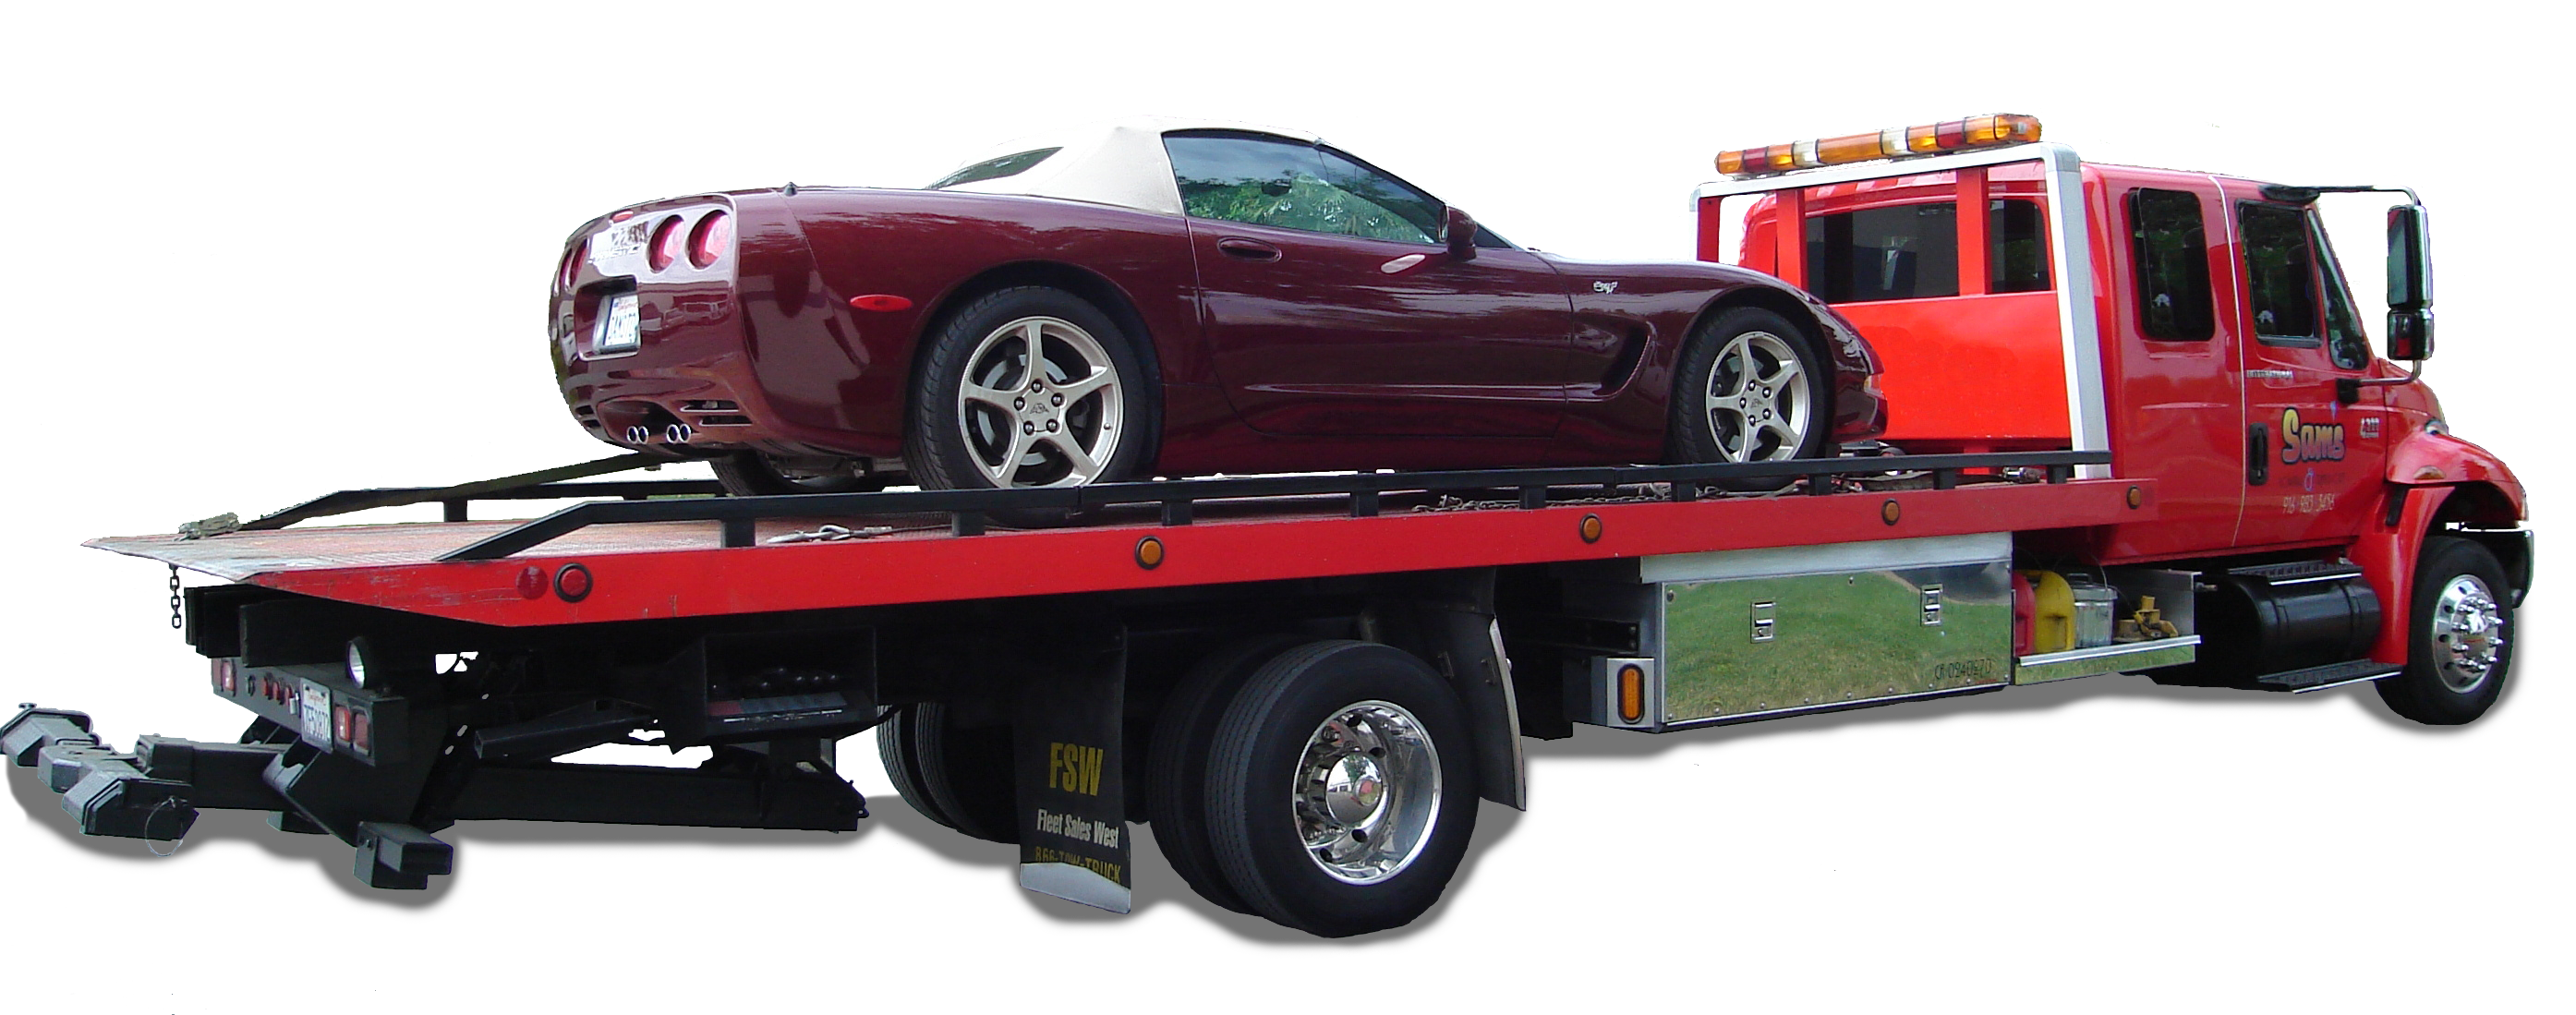 Sam S Towing Amp Transport Our Services